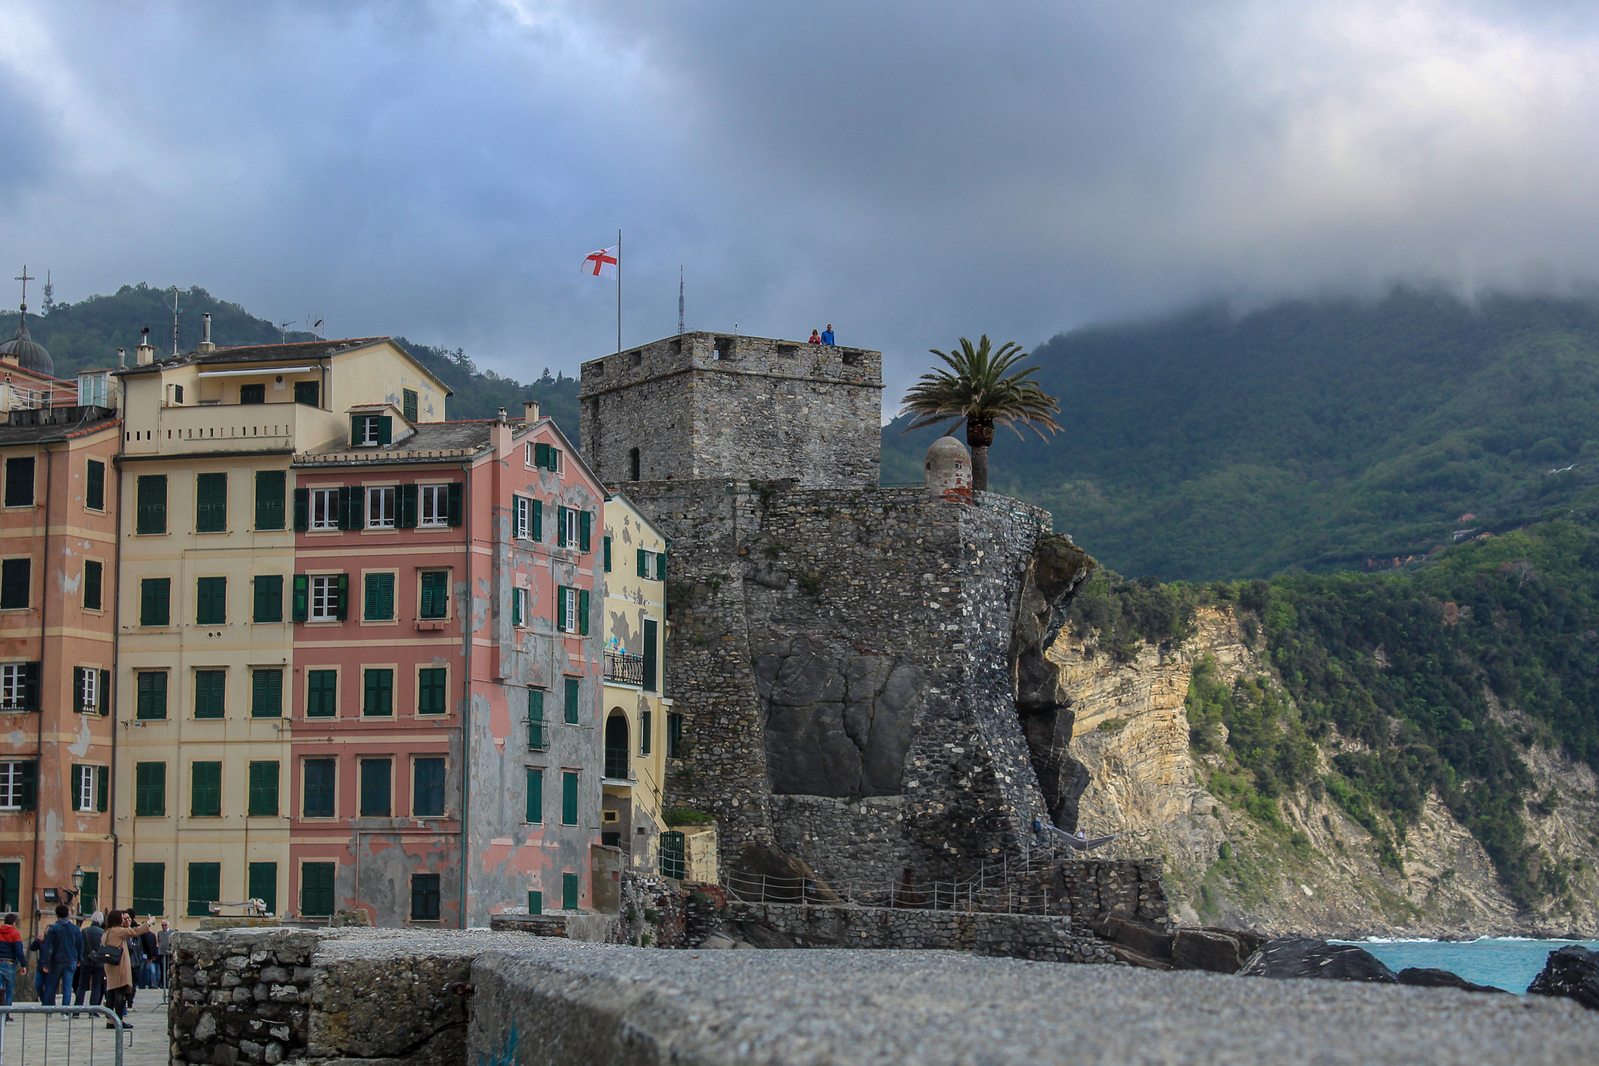 things to do in camogli italy: see an old castle on the water